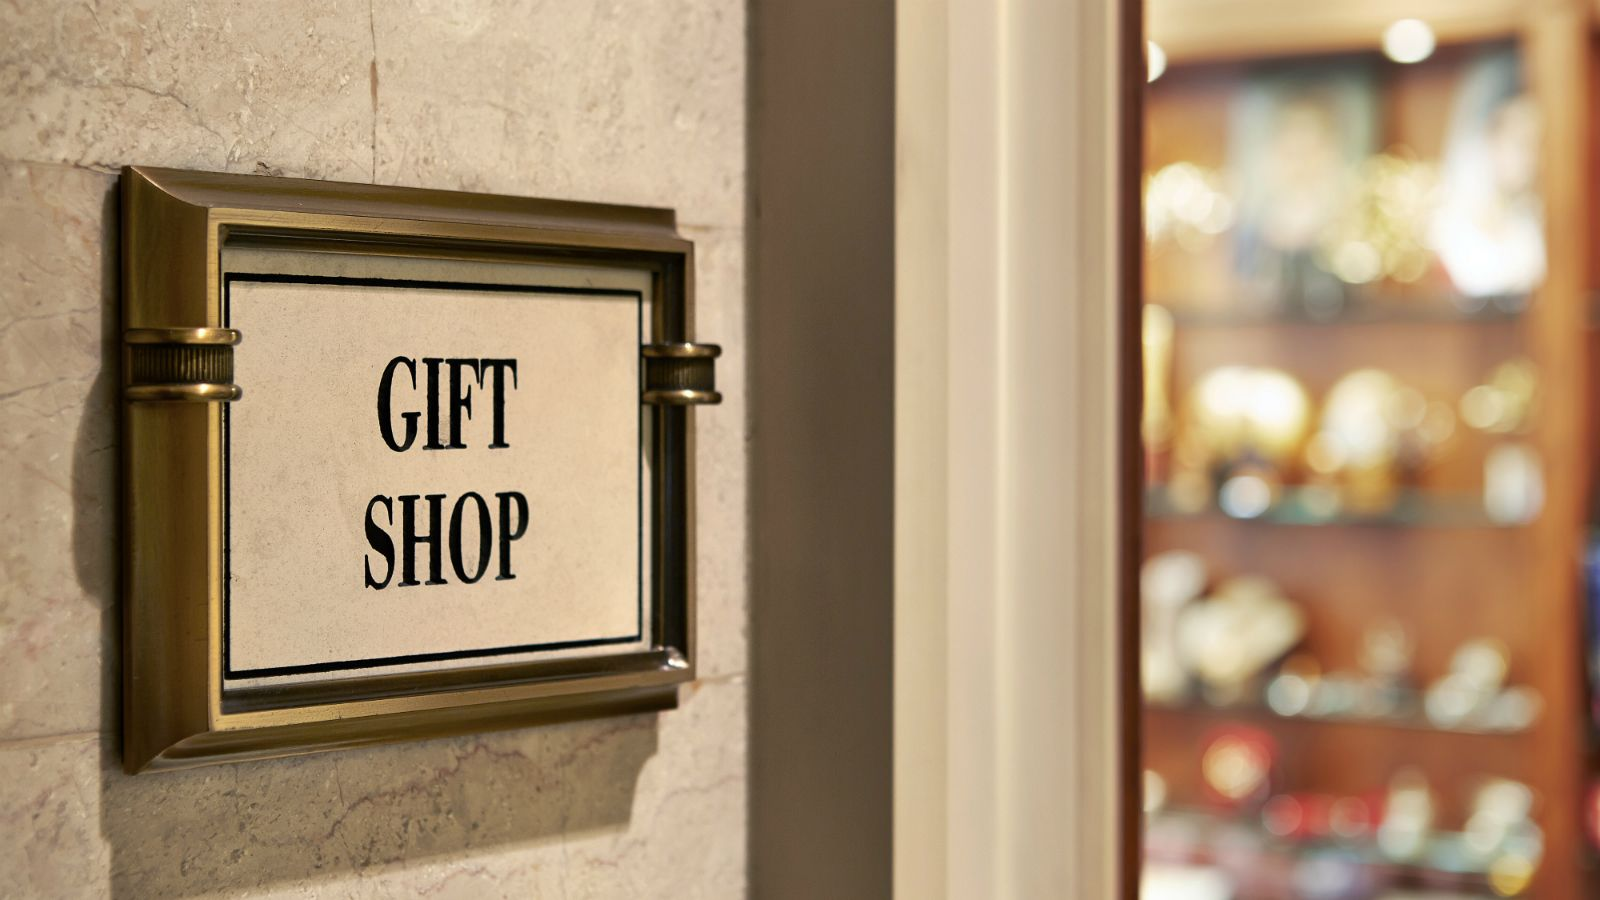 Find newspapers, magazines and more at the Gift Shop of the Hotel Grande Bretagne in Athens